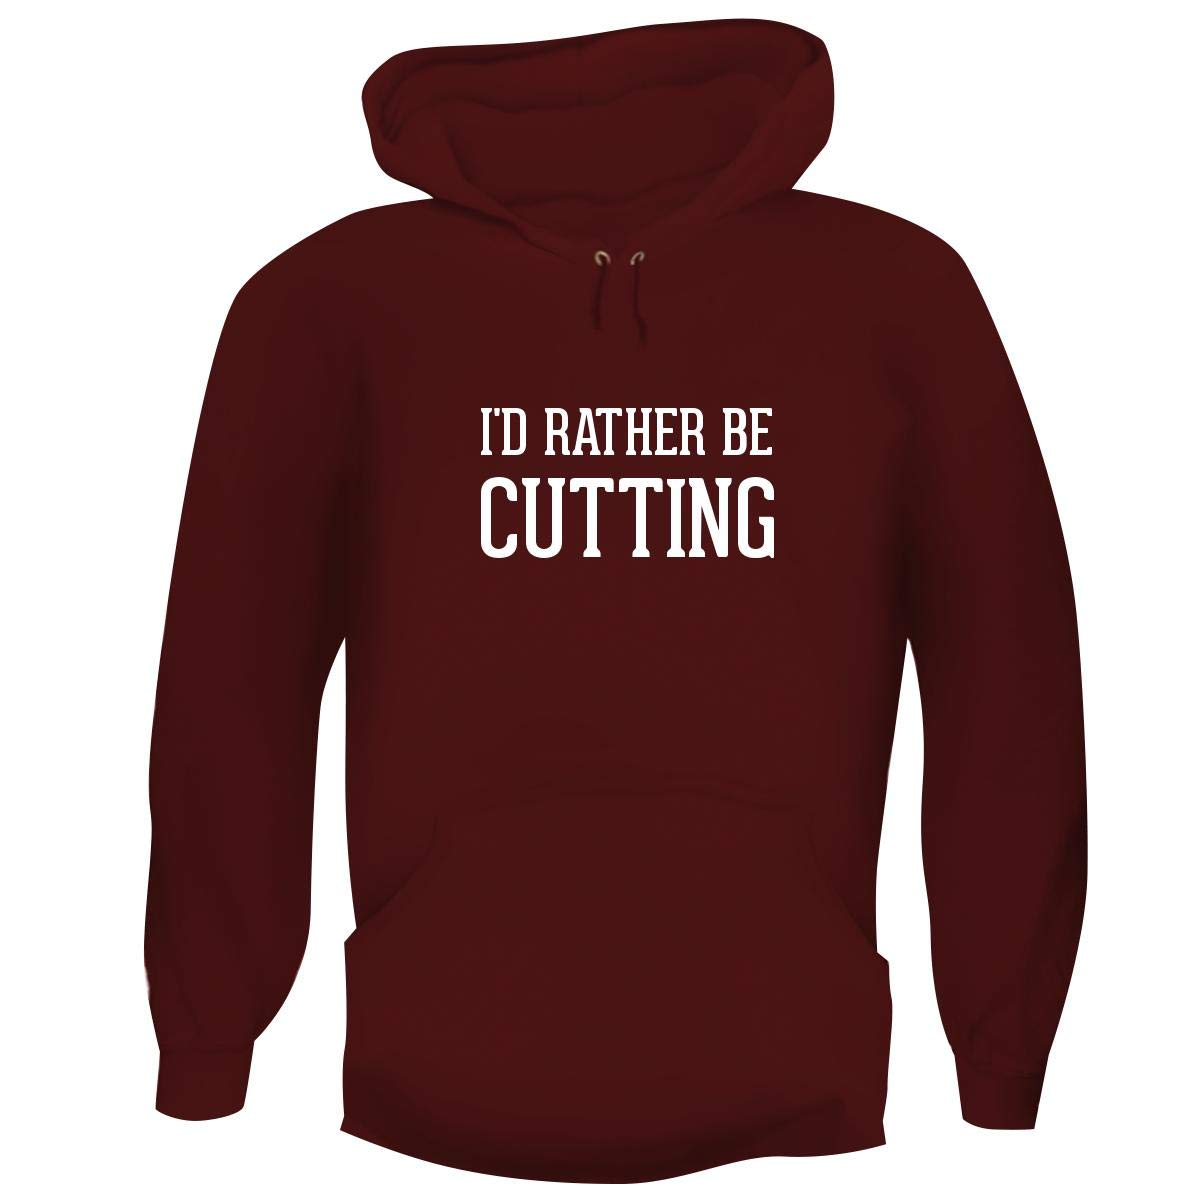 One Legging it Around I'd Rather Be Cutting - Hashtag Men's Funny Soft Adult Hoodie Pullover, Maroon, Large